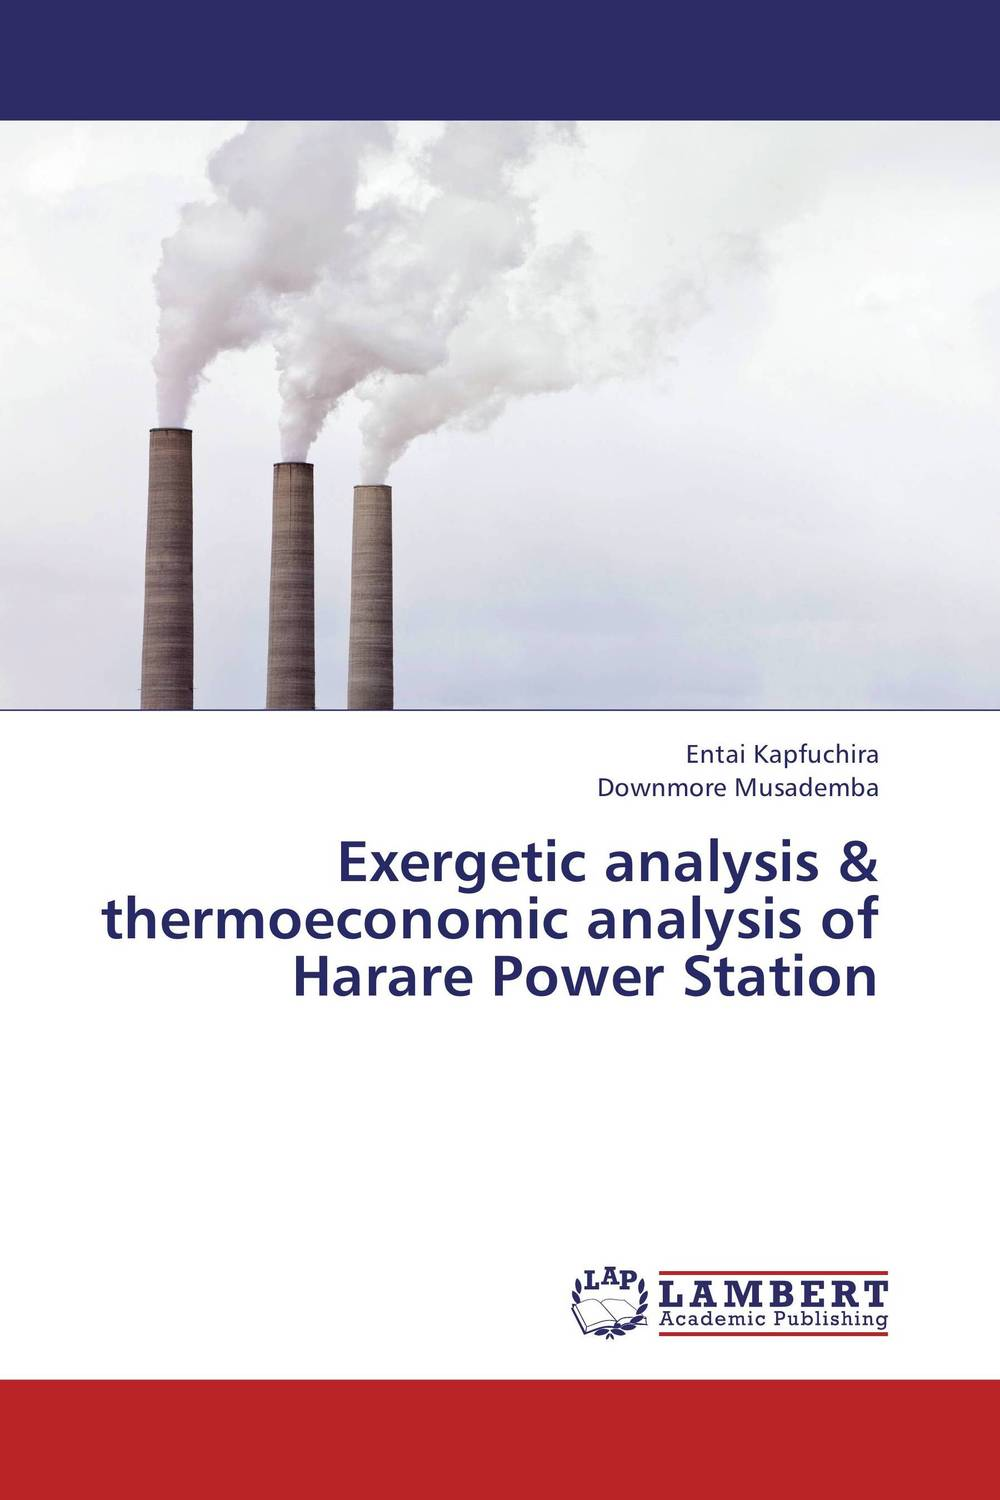 Exergetic analysis & thermoeconomic analysis of Harare Power Station practical approach to exergy and thermoeconomic analyses of industrial processes